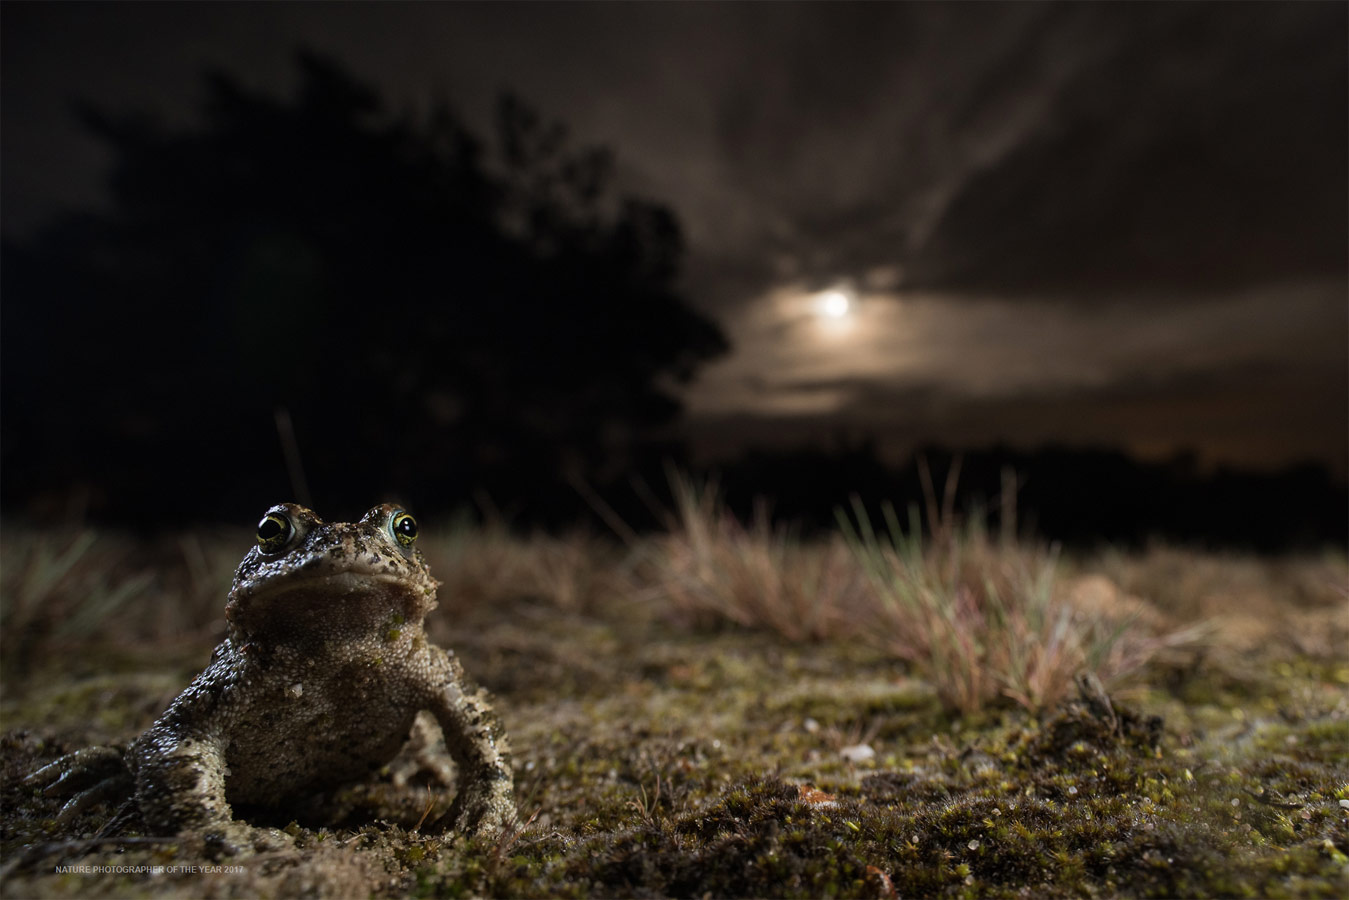 Under the Moon, © Paul van Hoof, Winner by Category C3 - Other animals, Nature Photographer of the Year